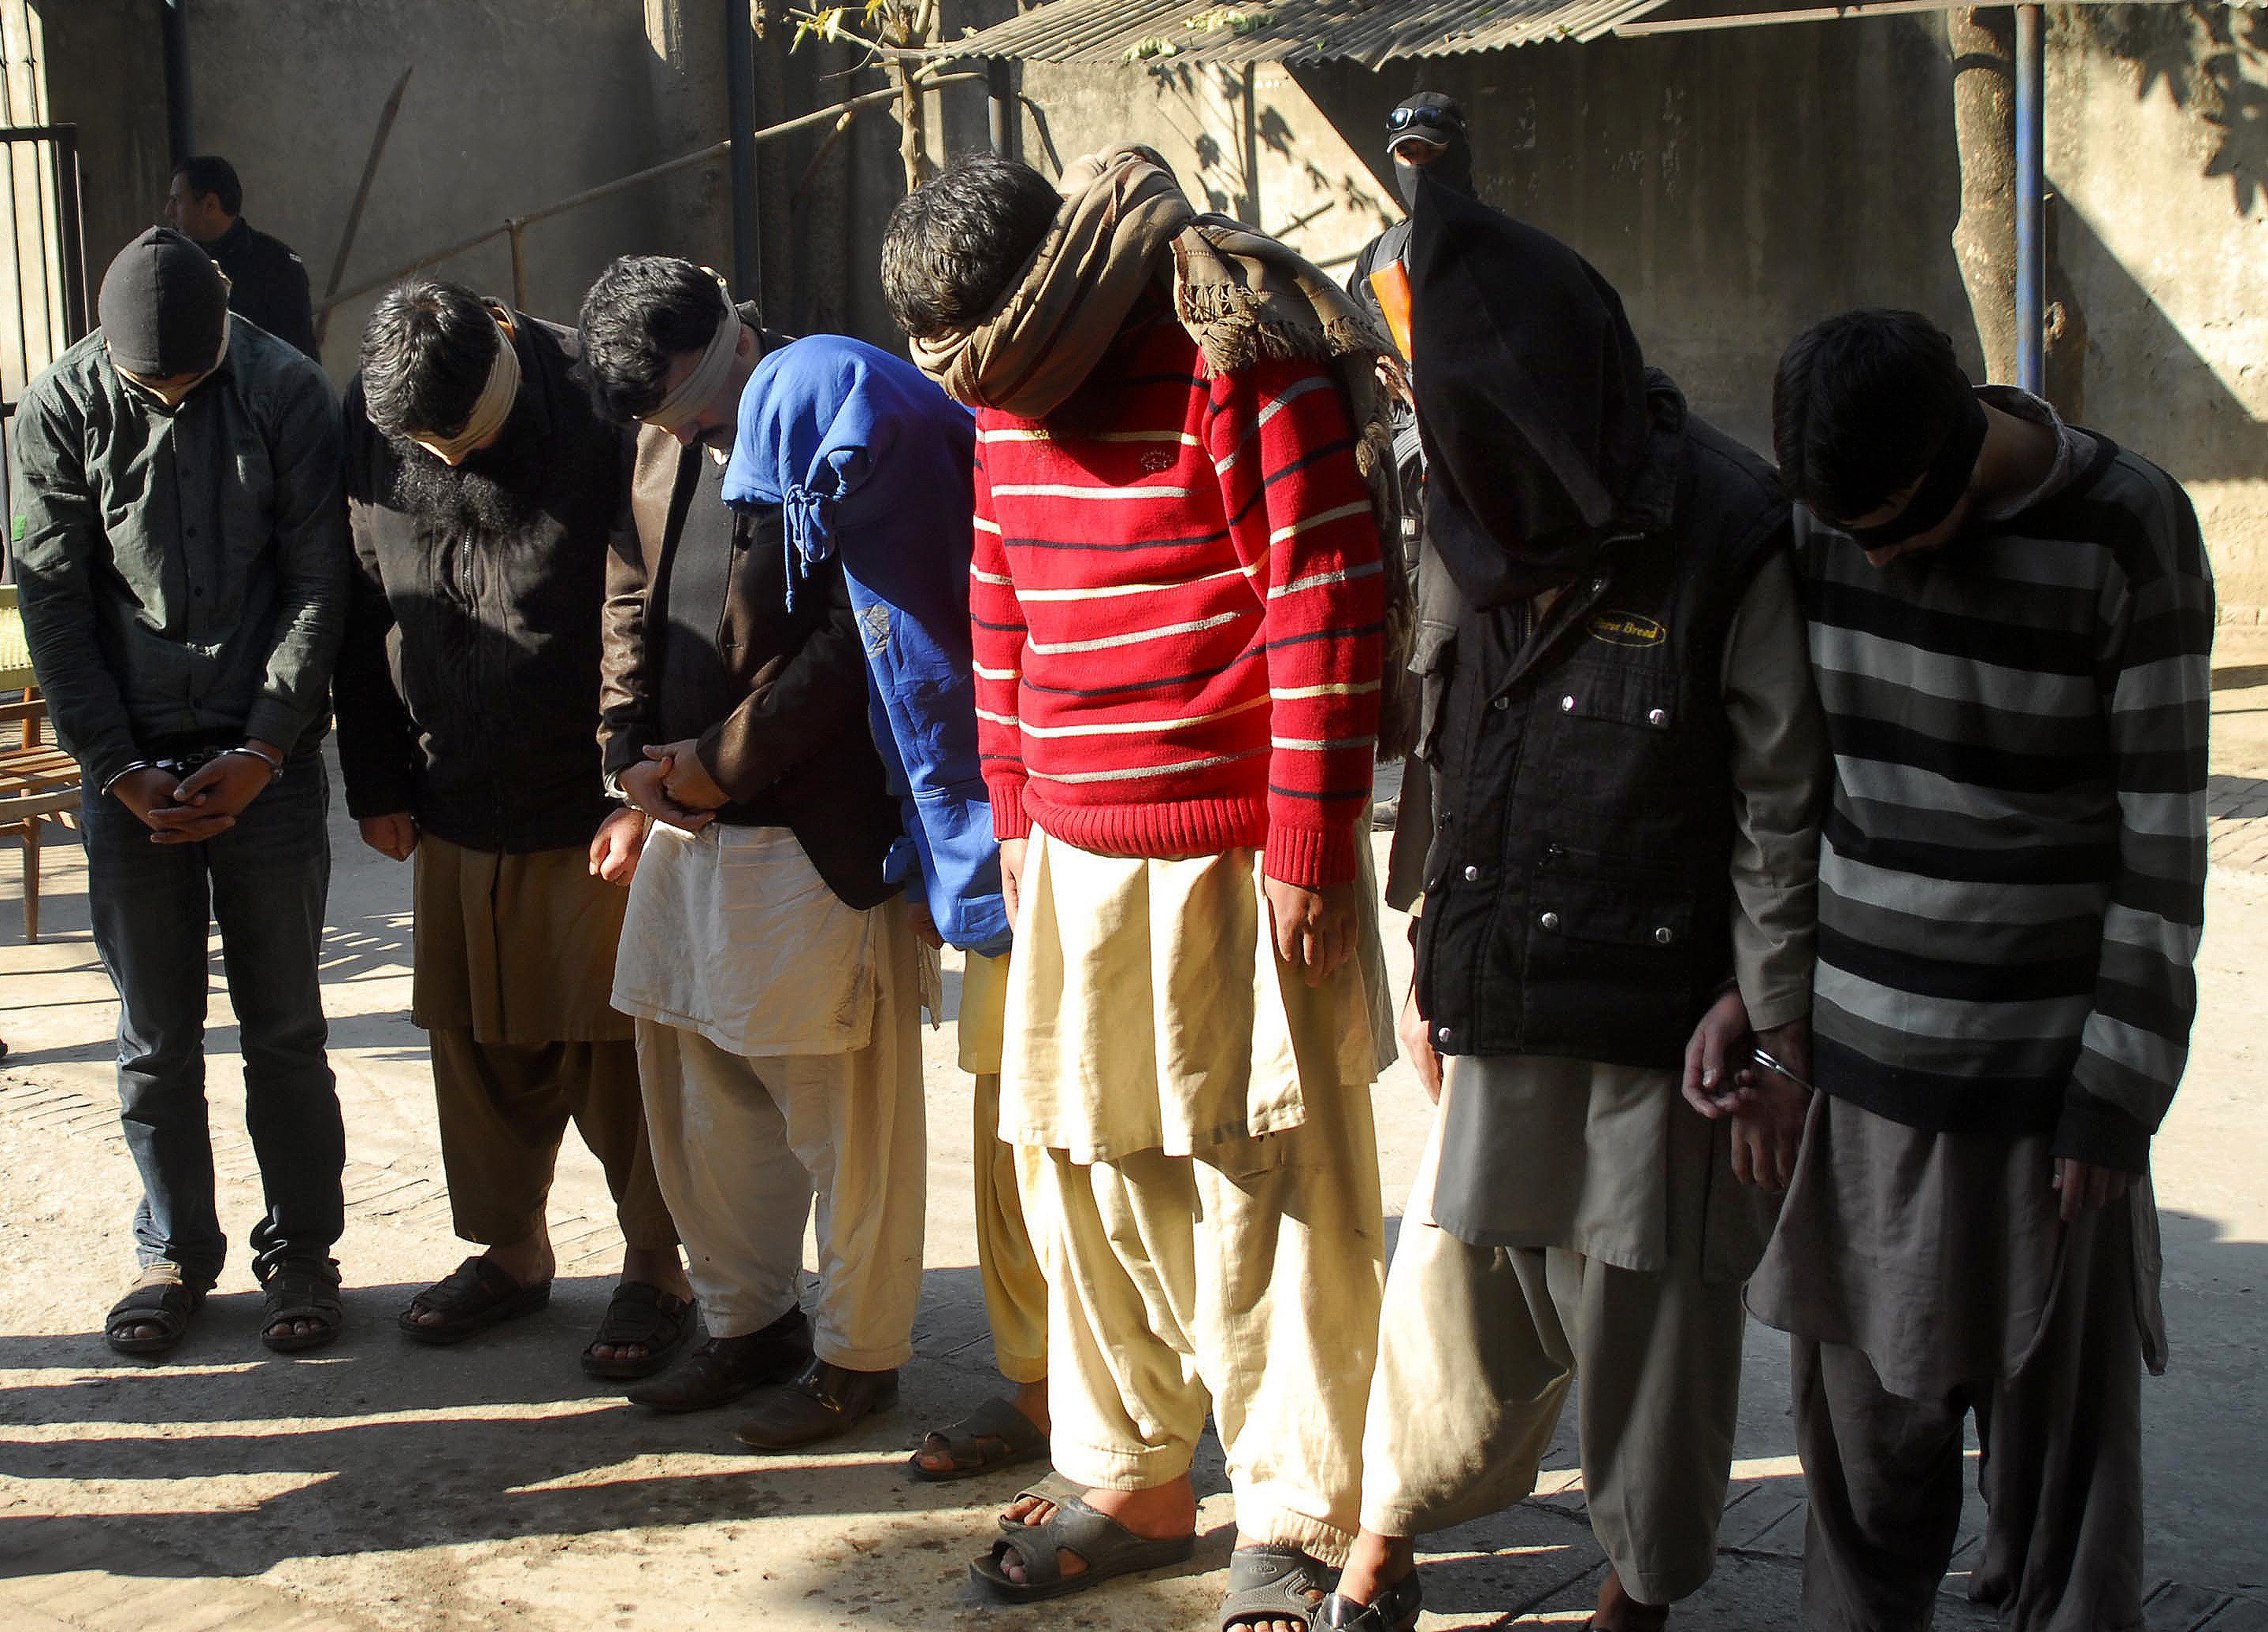 FILE - Pakistani suspects allegedly associated with the Islamic State group, wait to appear in an anti-terrorism court in Gujranwala, Pakistan, Dec. 29, 2015.